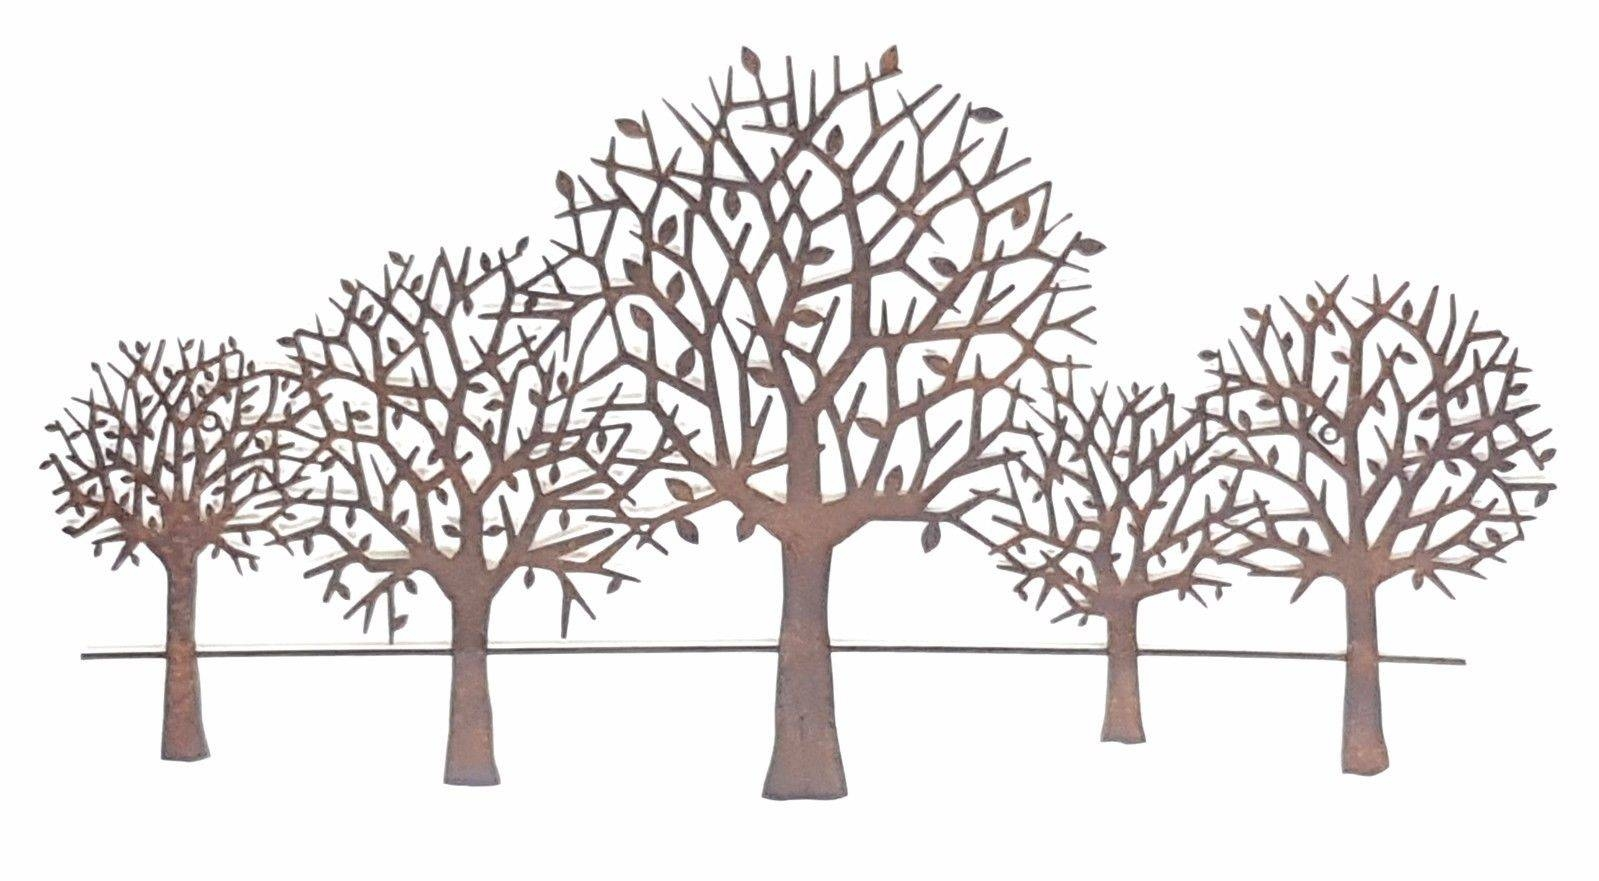 Wall Art Designs: Metal Wall Art Trees Tree Scenery Metal Hanging With Regard To Recent Metal Tree Wall Art Sculpture (View 13 of 20)